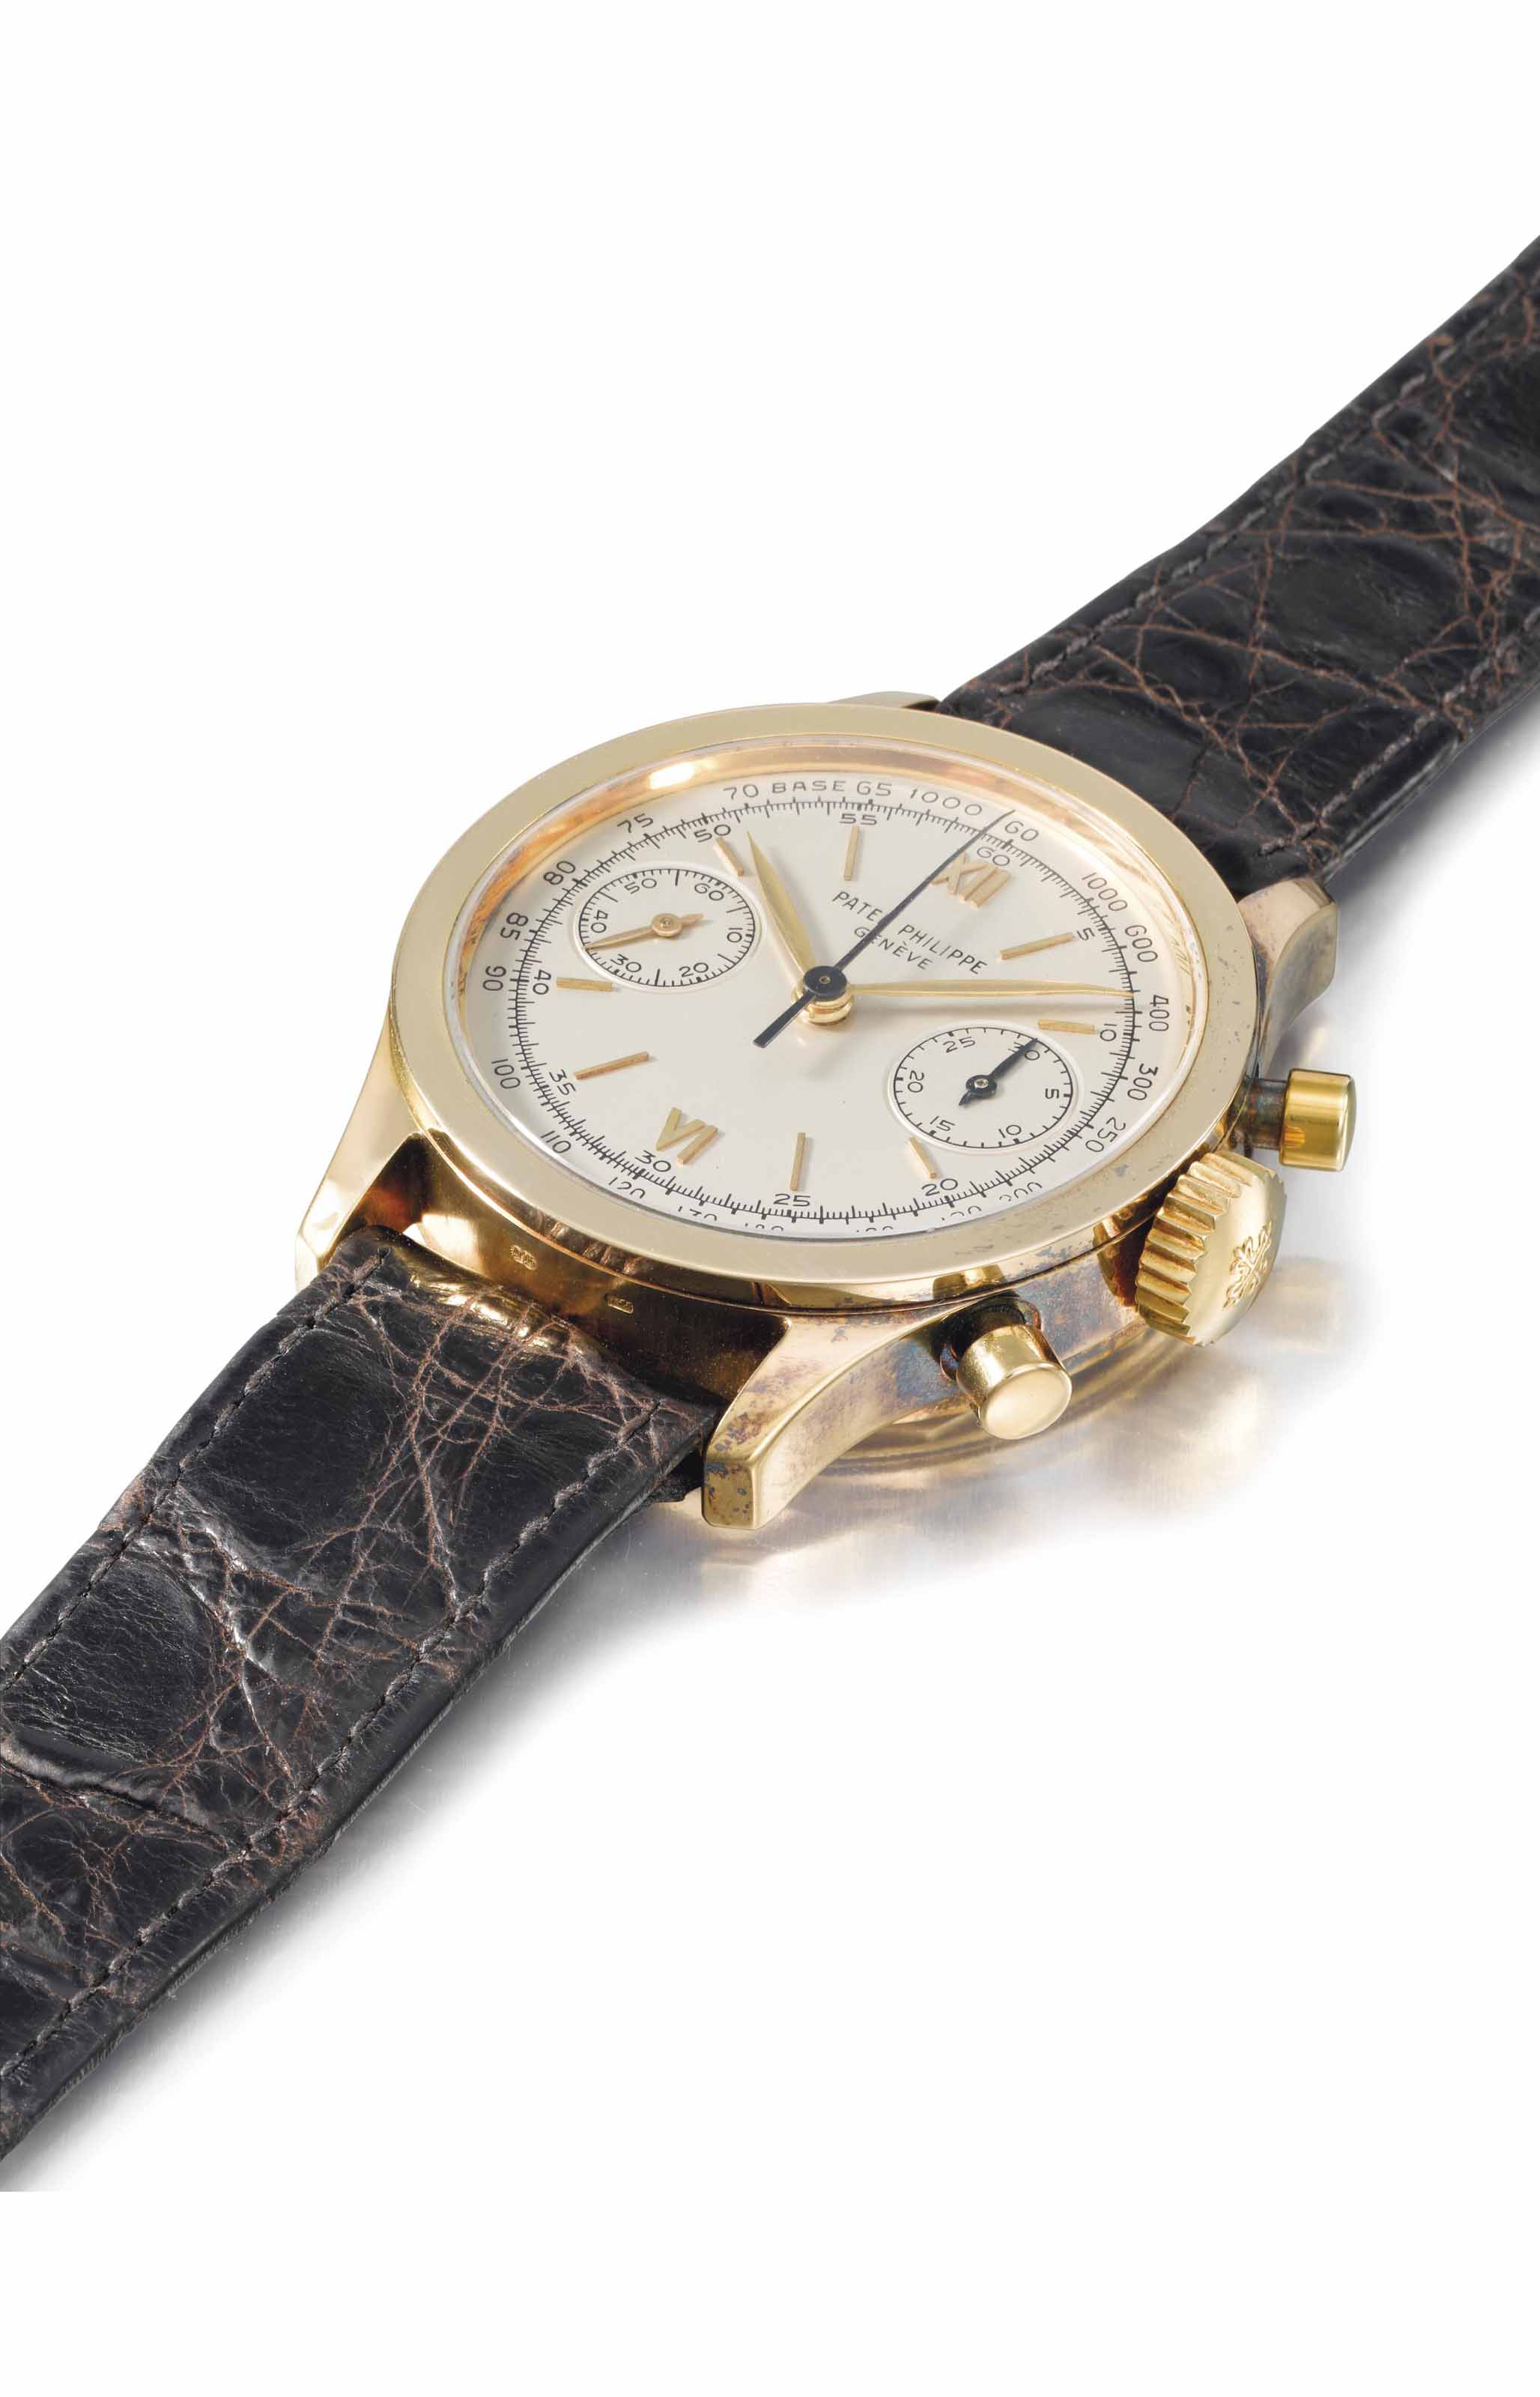 Patek Philippe. An extremely fine, rare and attractive 18K gold chronograph wristwatch